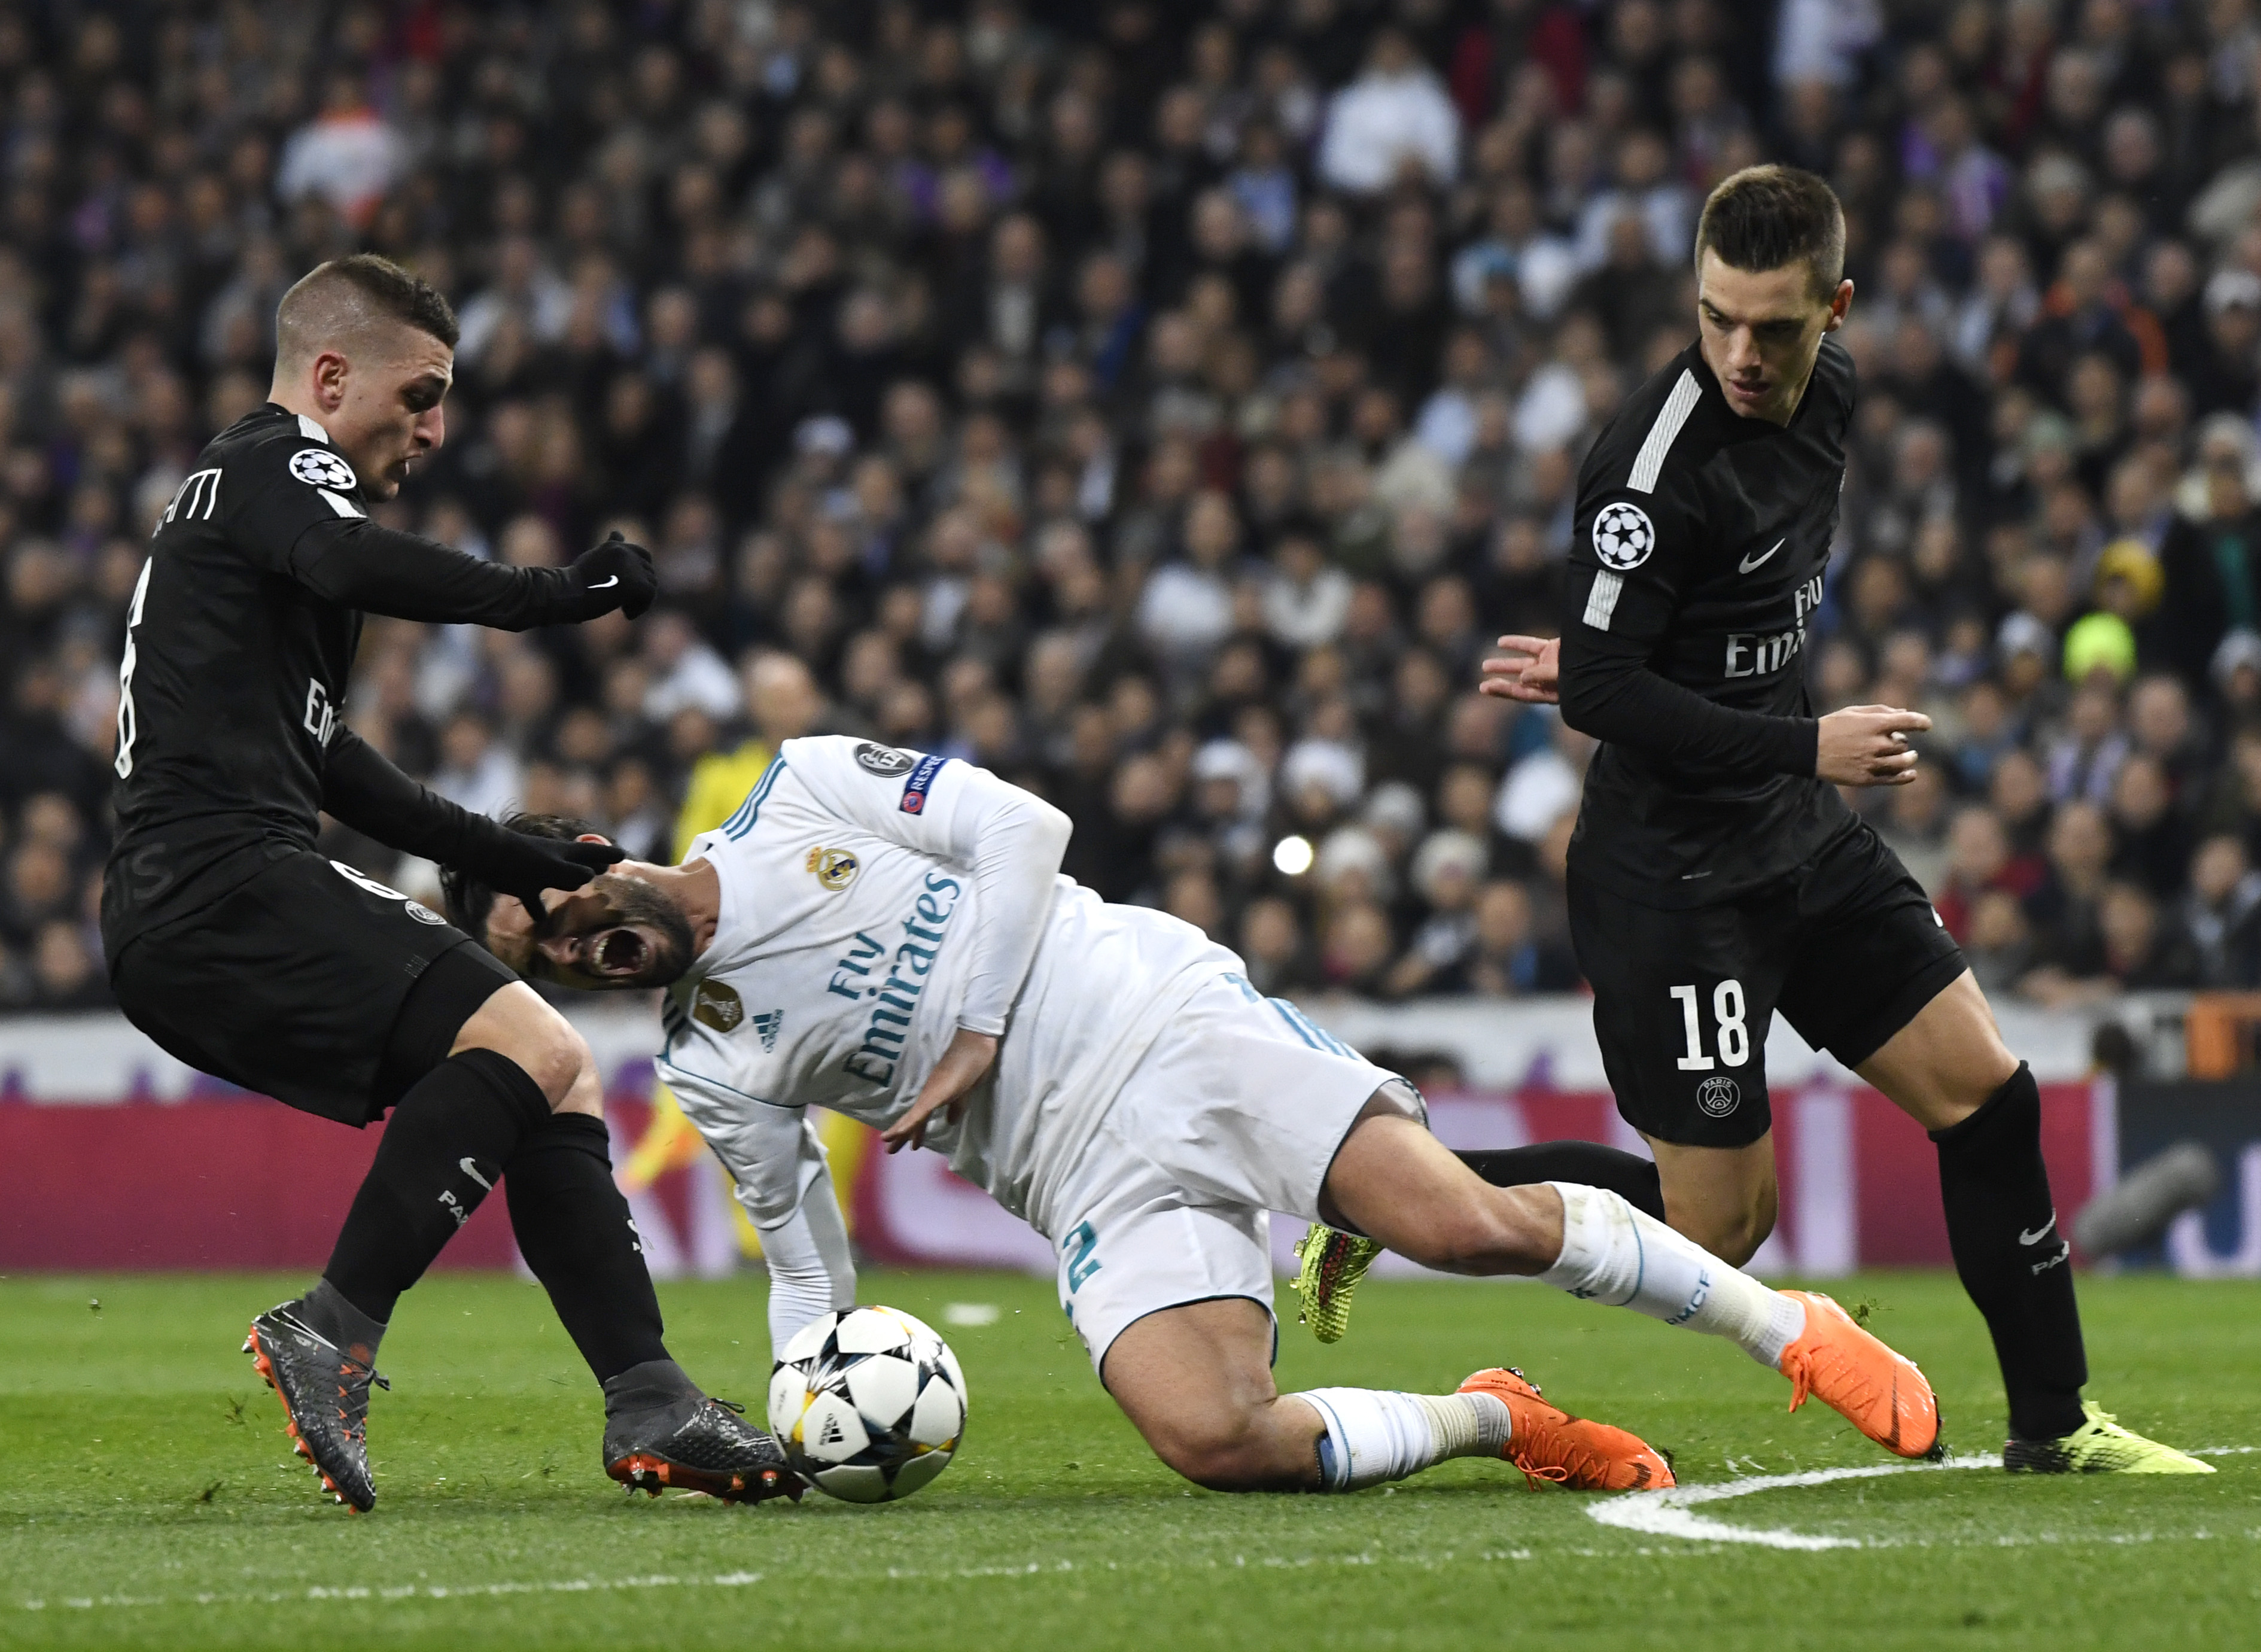 Real Madrid's Spanish midfielder Isco (c) vies with Paris Saint-Germain's Marco Verratti (l).